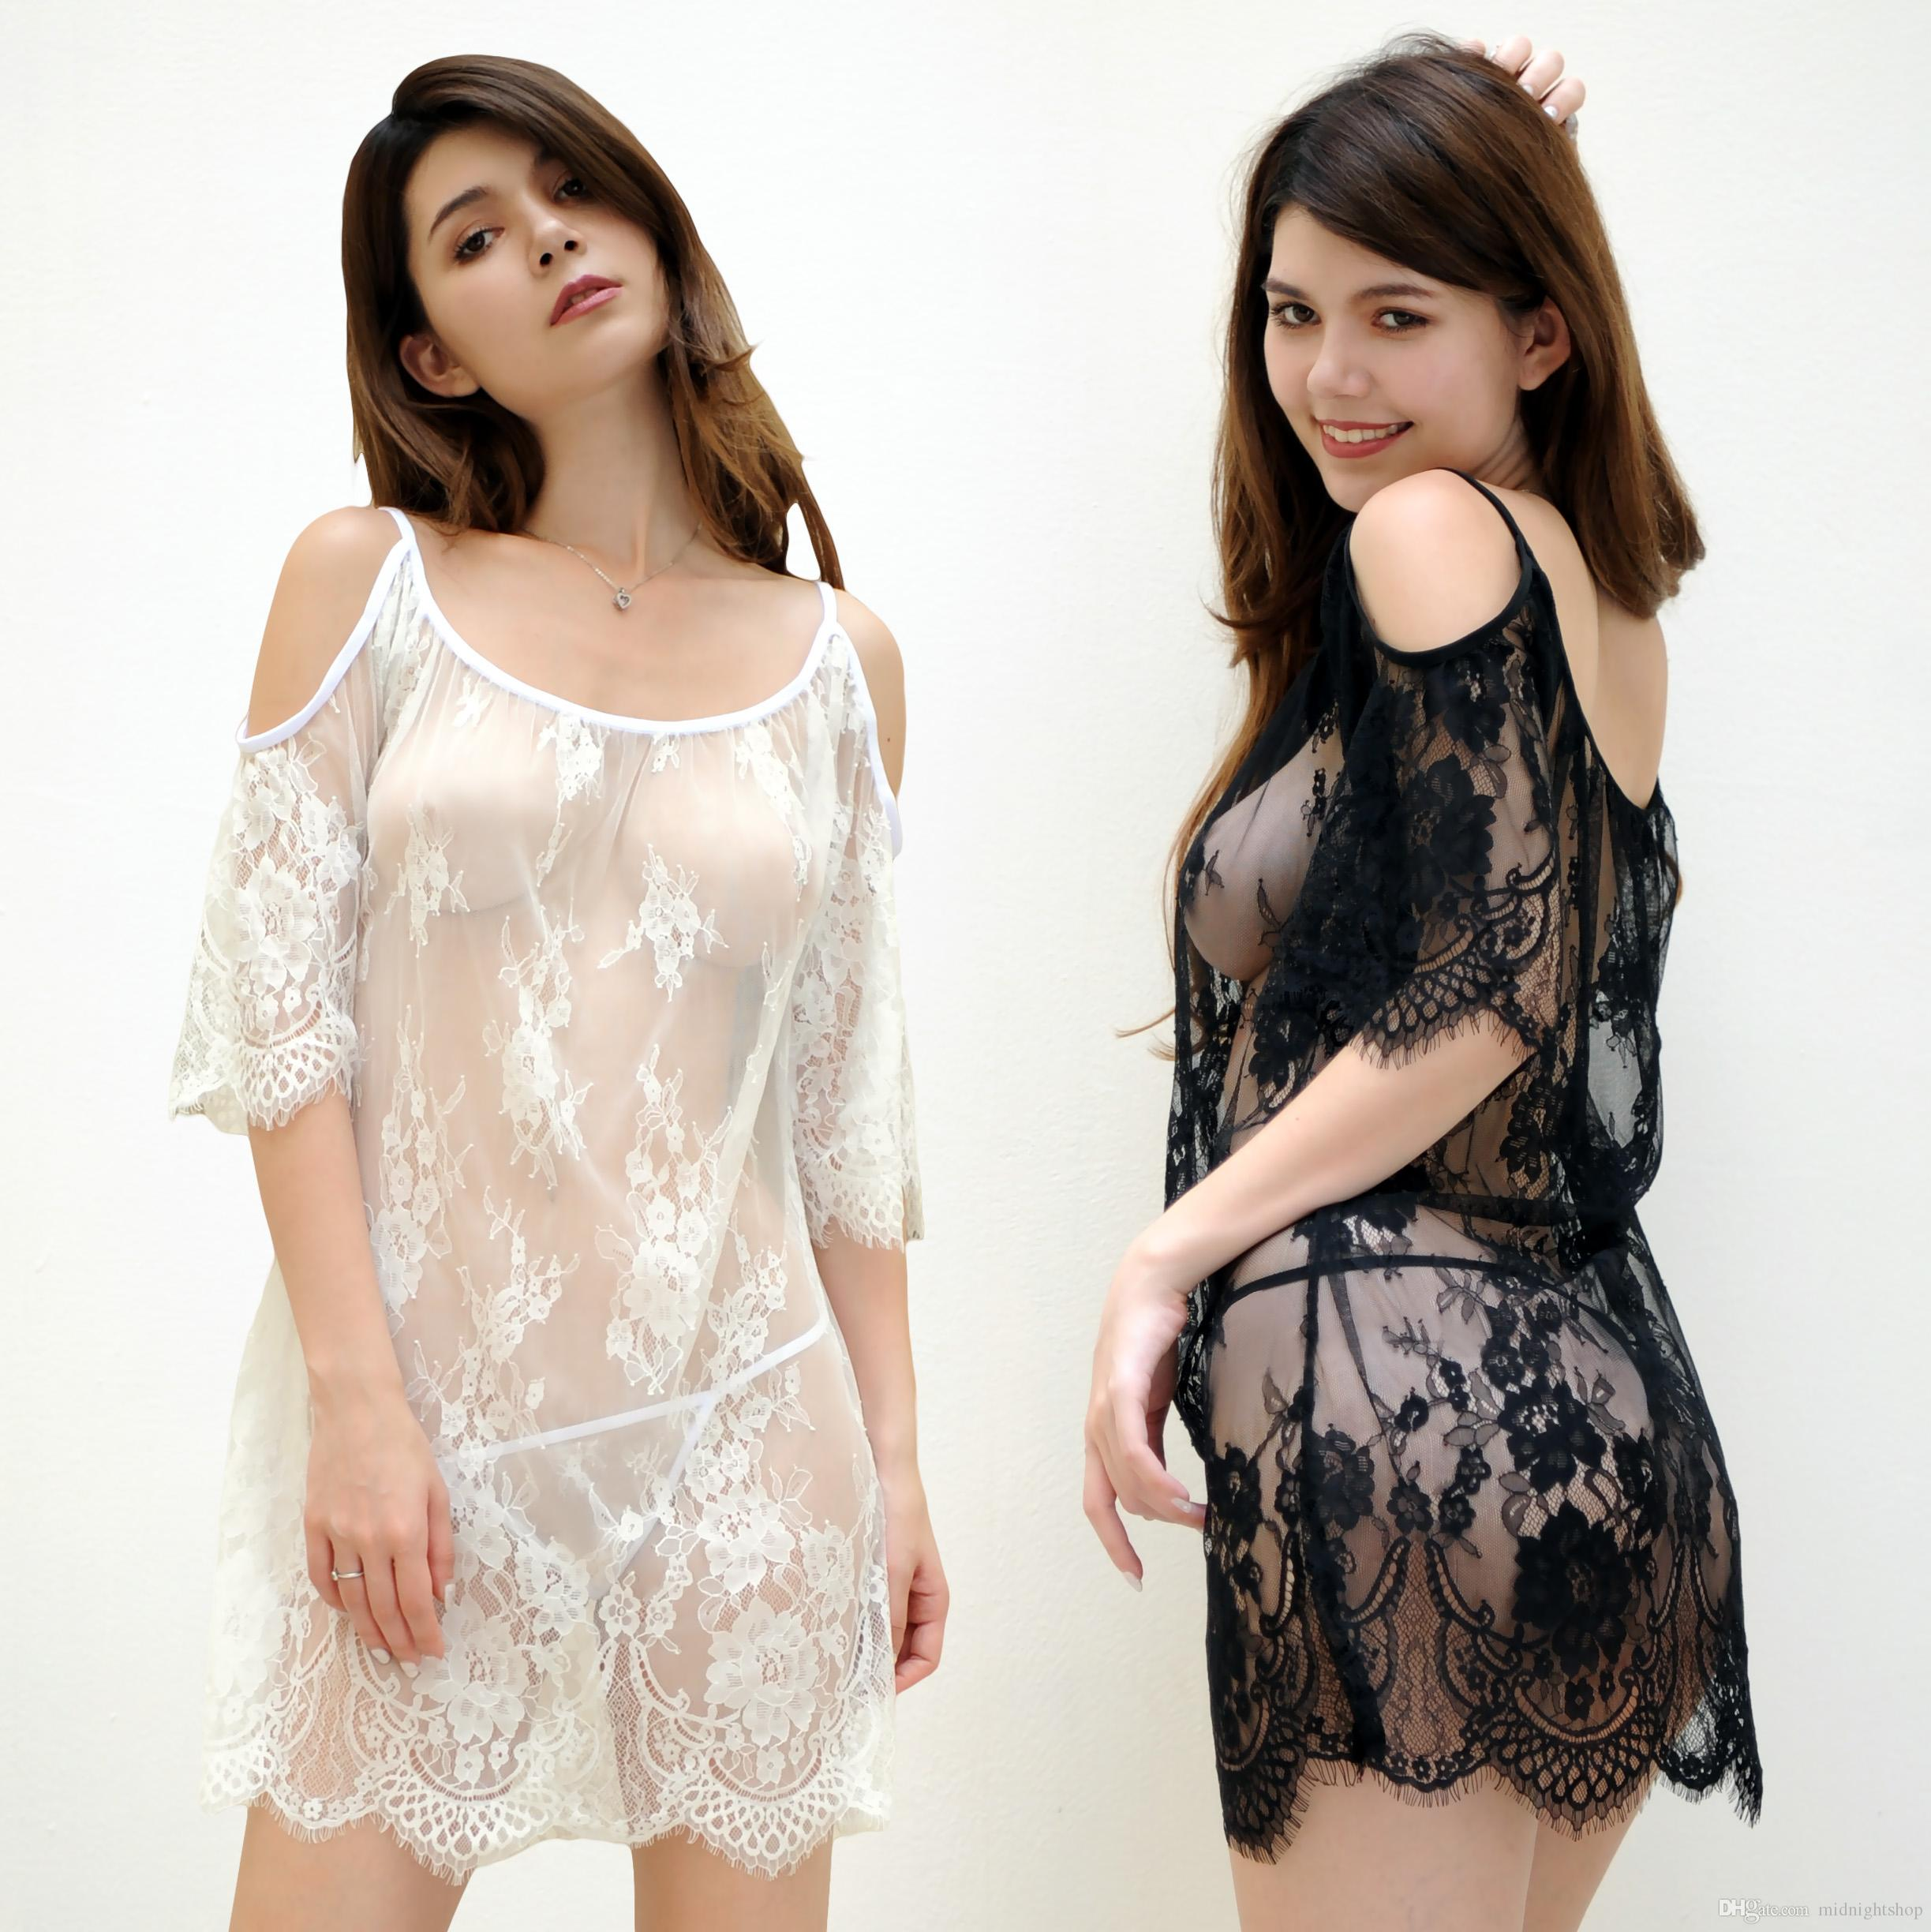 81a3b391e9 2019 Factory Wholesale Sexy Underwear Lace Girl Sleepwear Black And White  Colour Sexy Dress Pajamas MN060 From Midnightshop